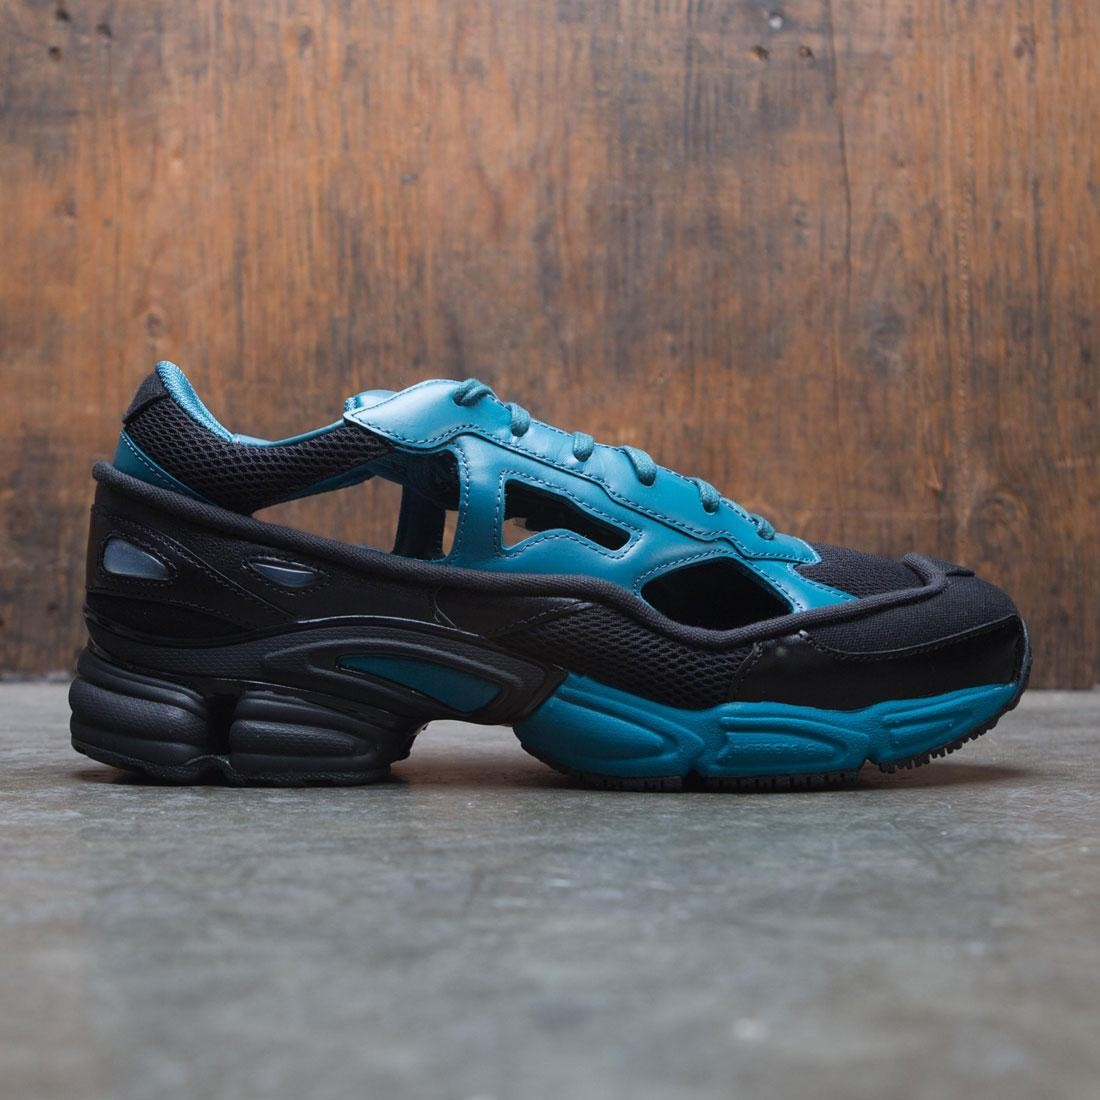 Adidas x Raf Simons Men Replicant Ozweego black colonial blue core black 6766c28ef943